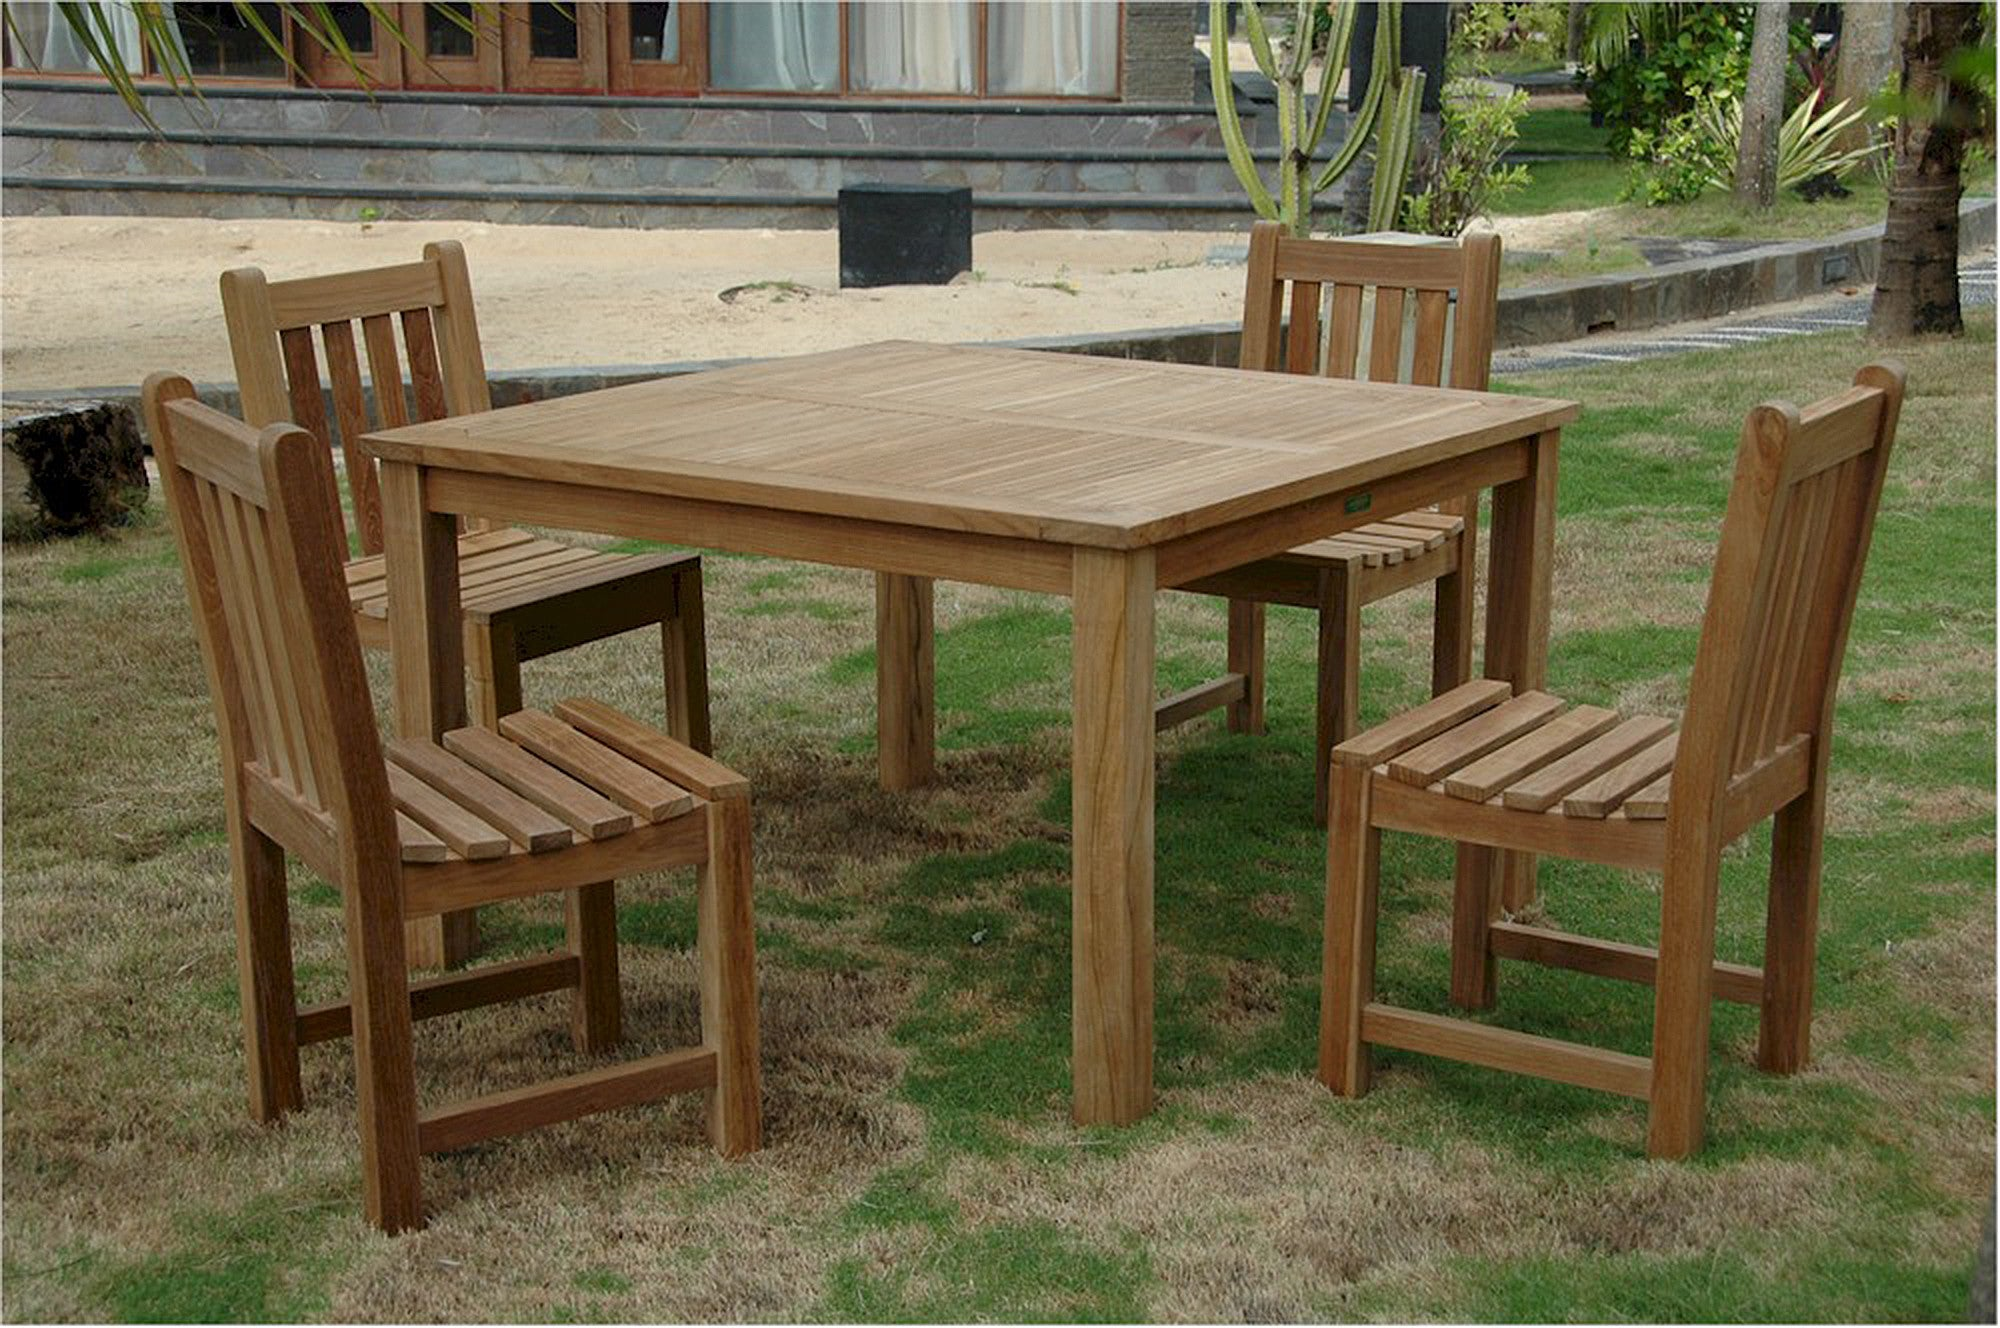 Anderson Teak | Classic Chair & Windsor Table Patio Dining Set for 4 ...